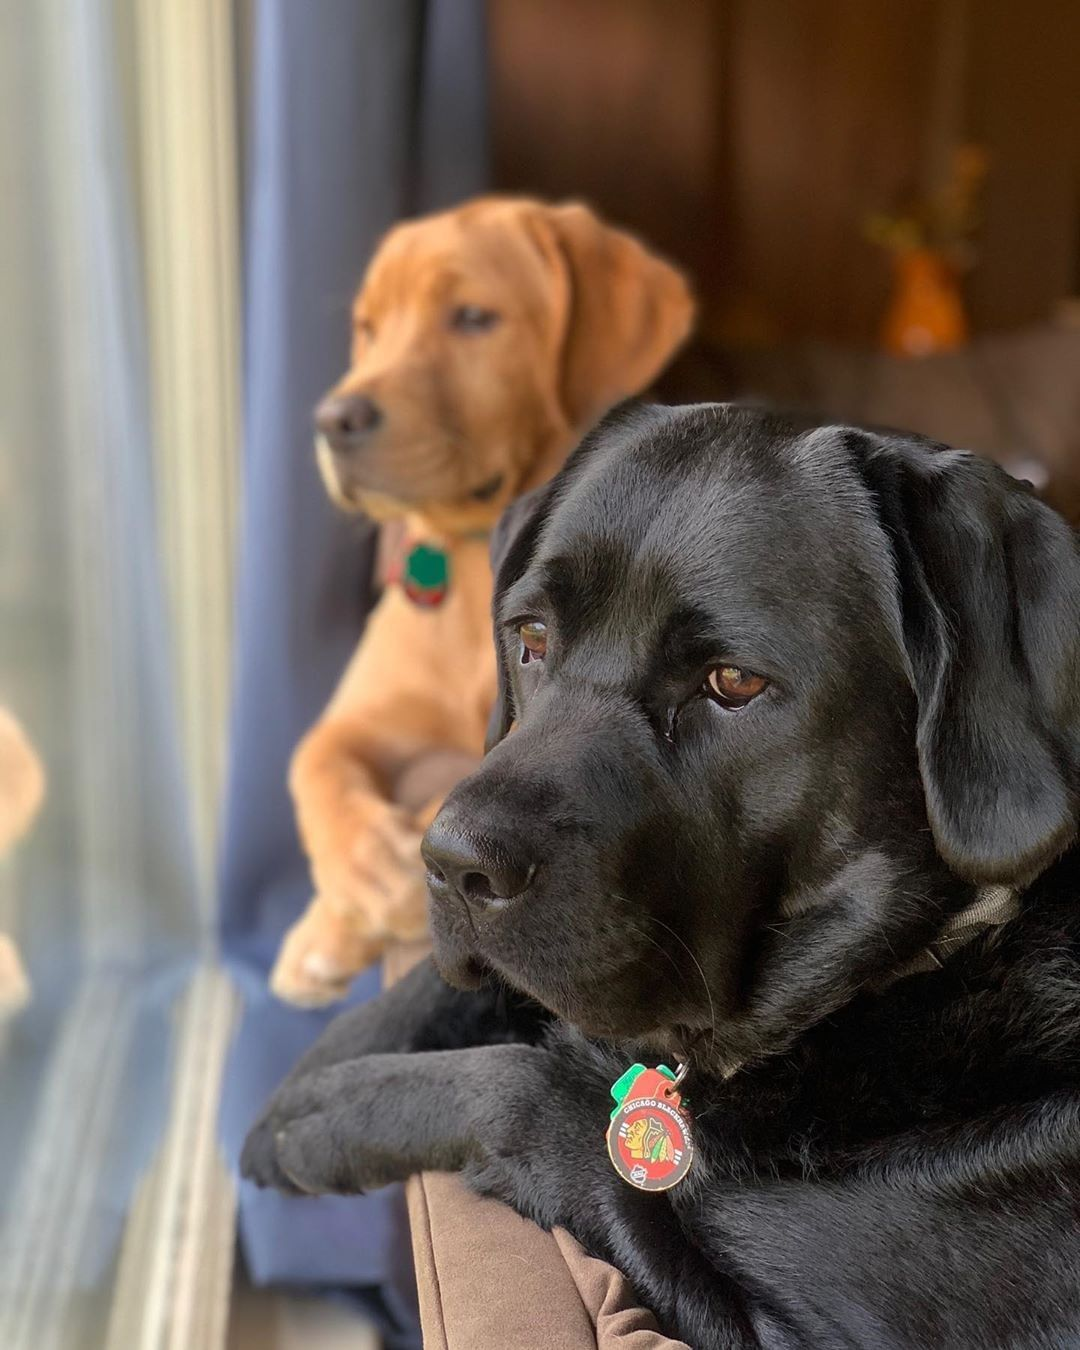 I am A Labrador Owner & In This Page I will Provide labrador retriever puppies labrador retriever facts And labrador retriever training & care #labradorretrieverpuppies